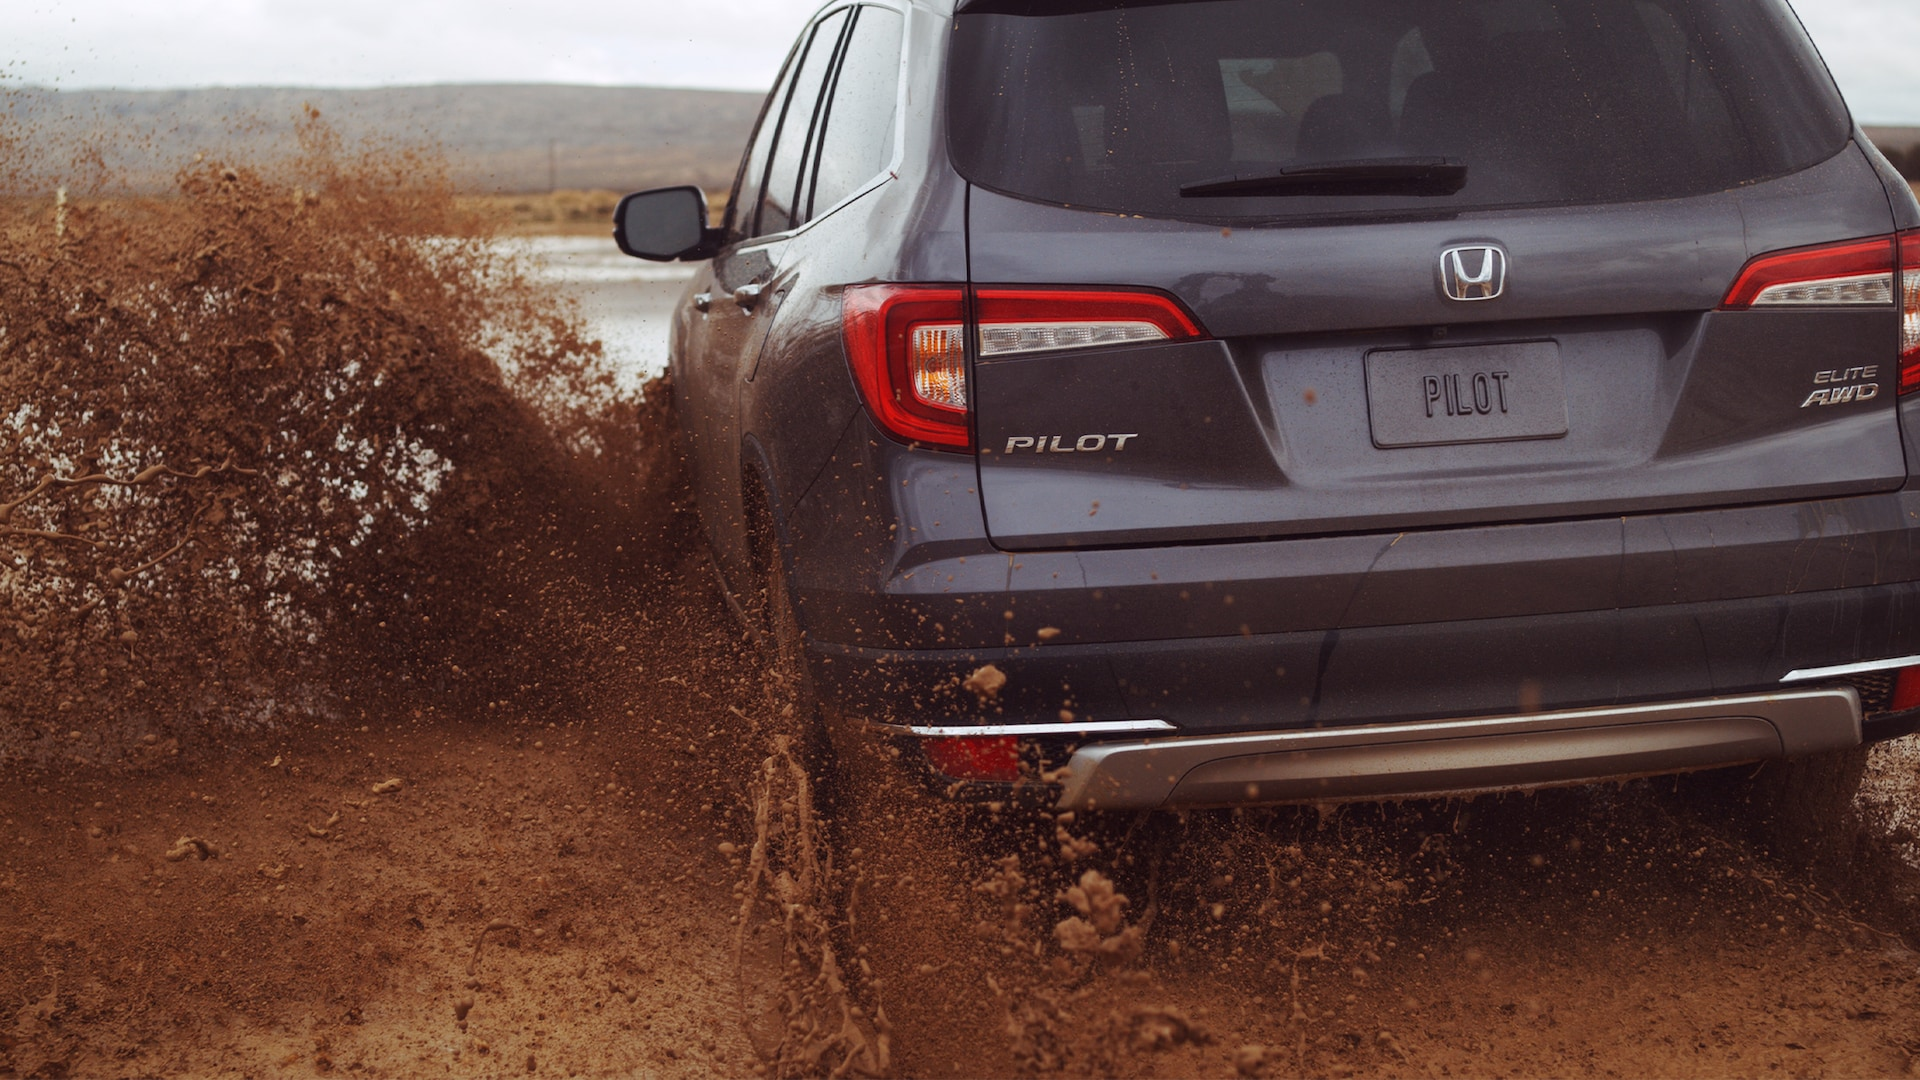 Honda Pilot performing in mud.